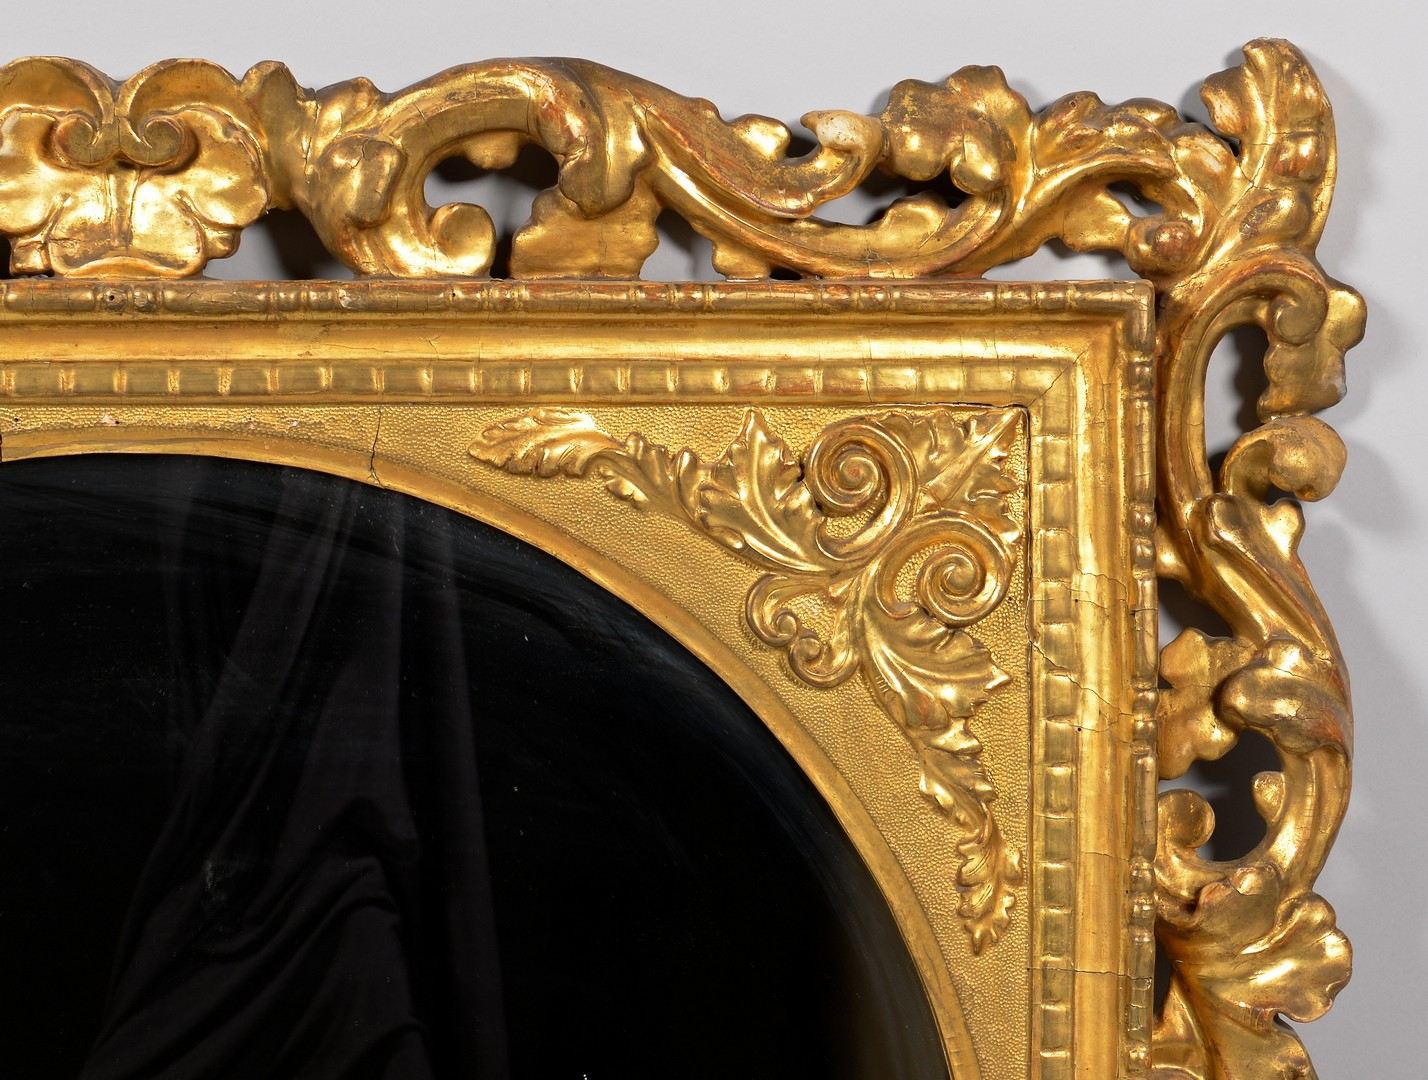 Lot 115: Large Gilt Carved Rococo Mirror, attrib. Italian